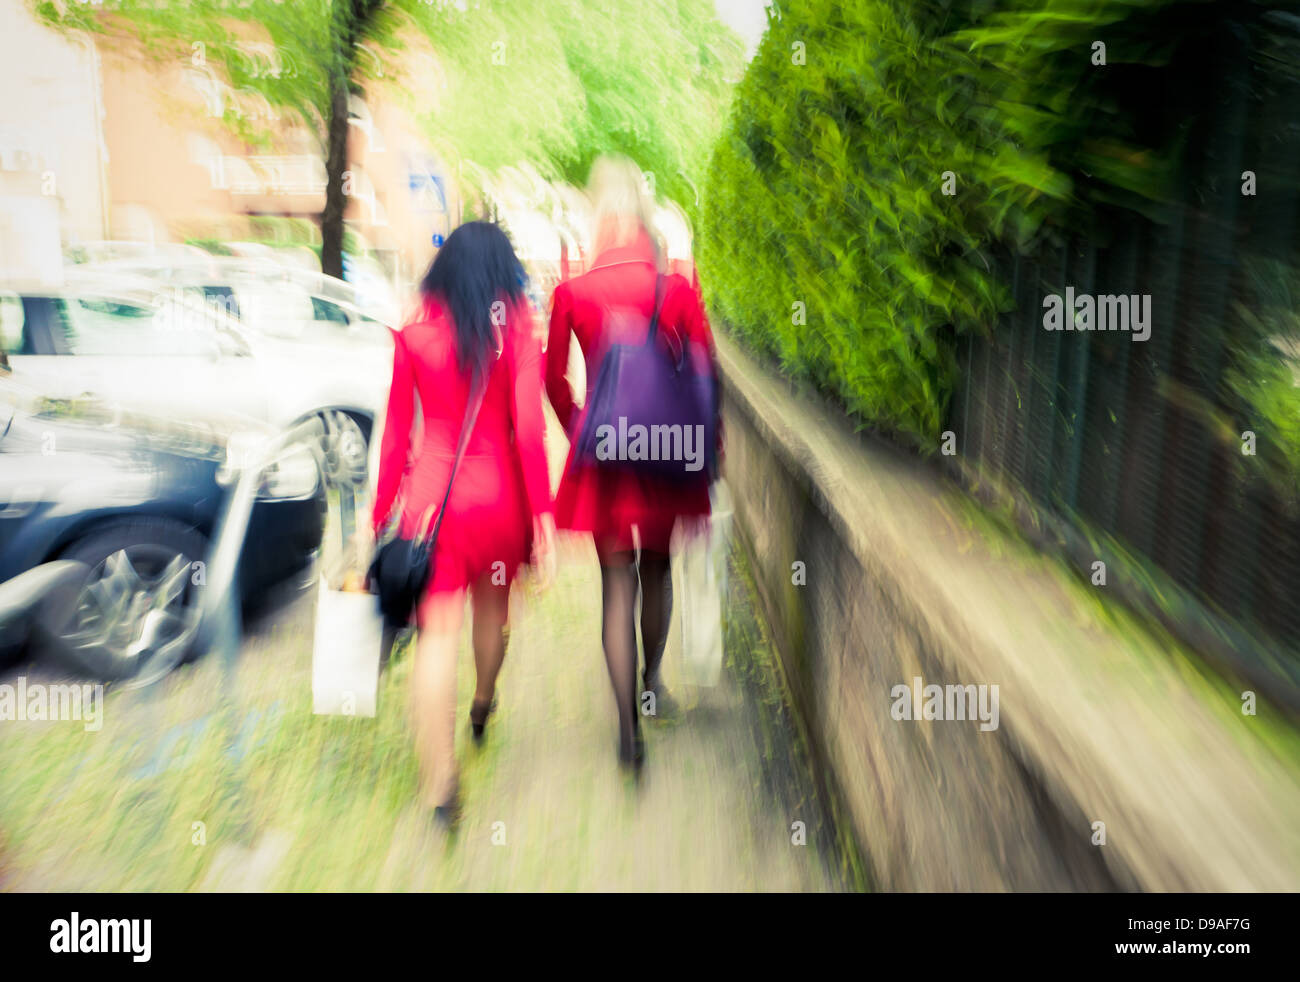 Two unrecognizable fashioable women in red going ahead, intentional motion blur - Stock Image